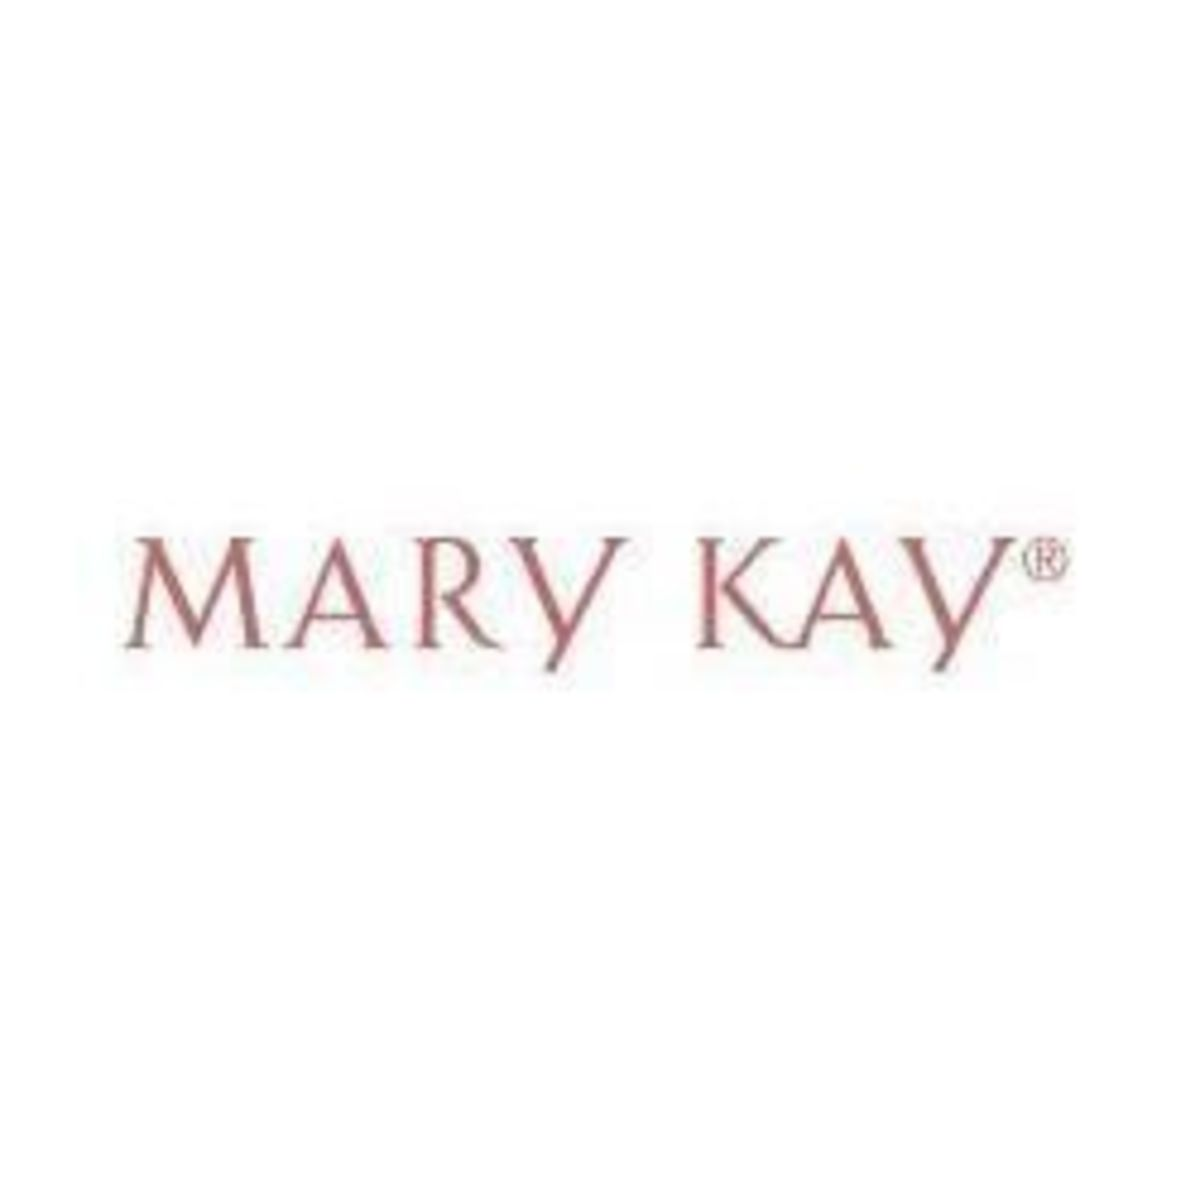 Can You Really Make Money Selling Mary Kay?